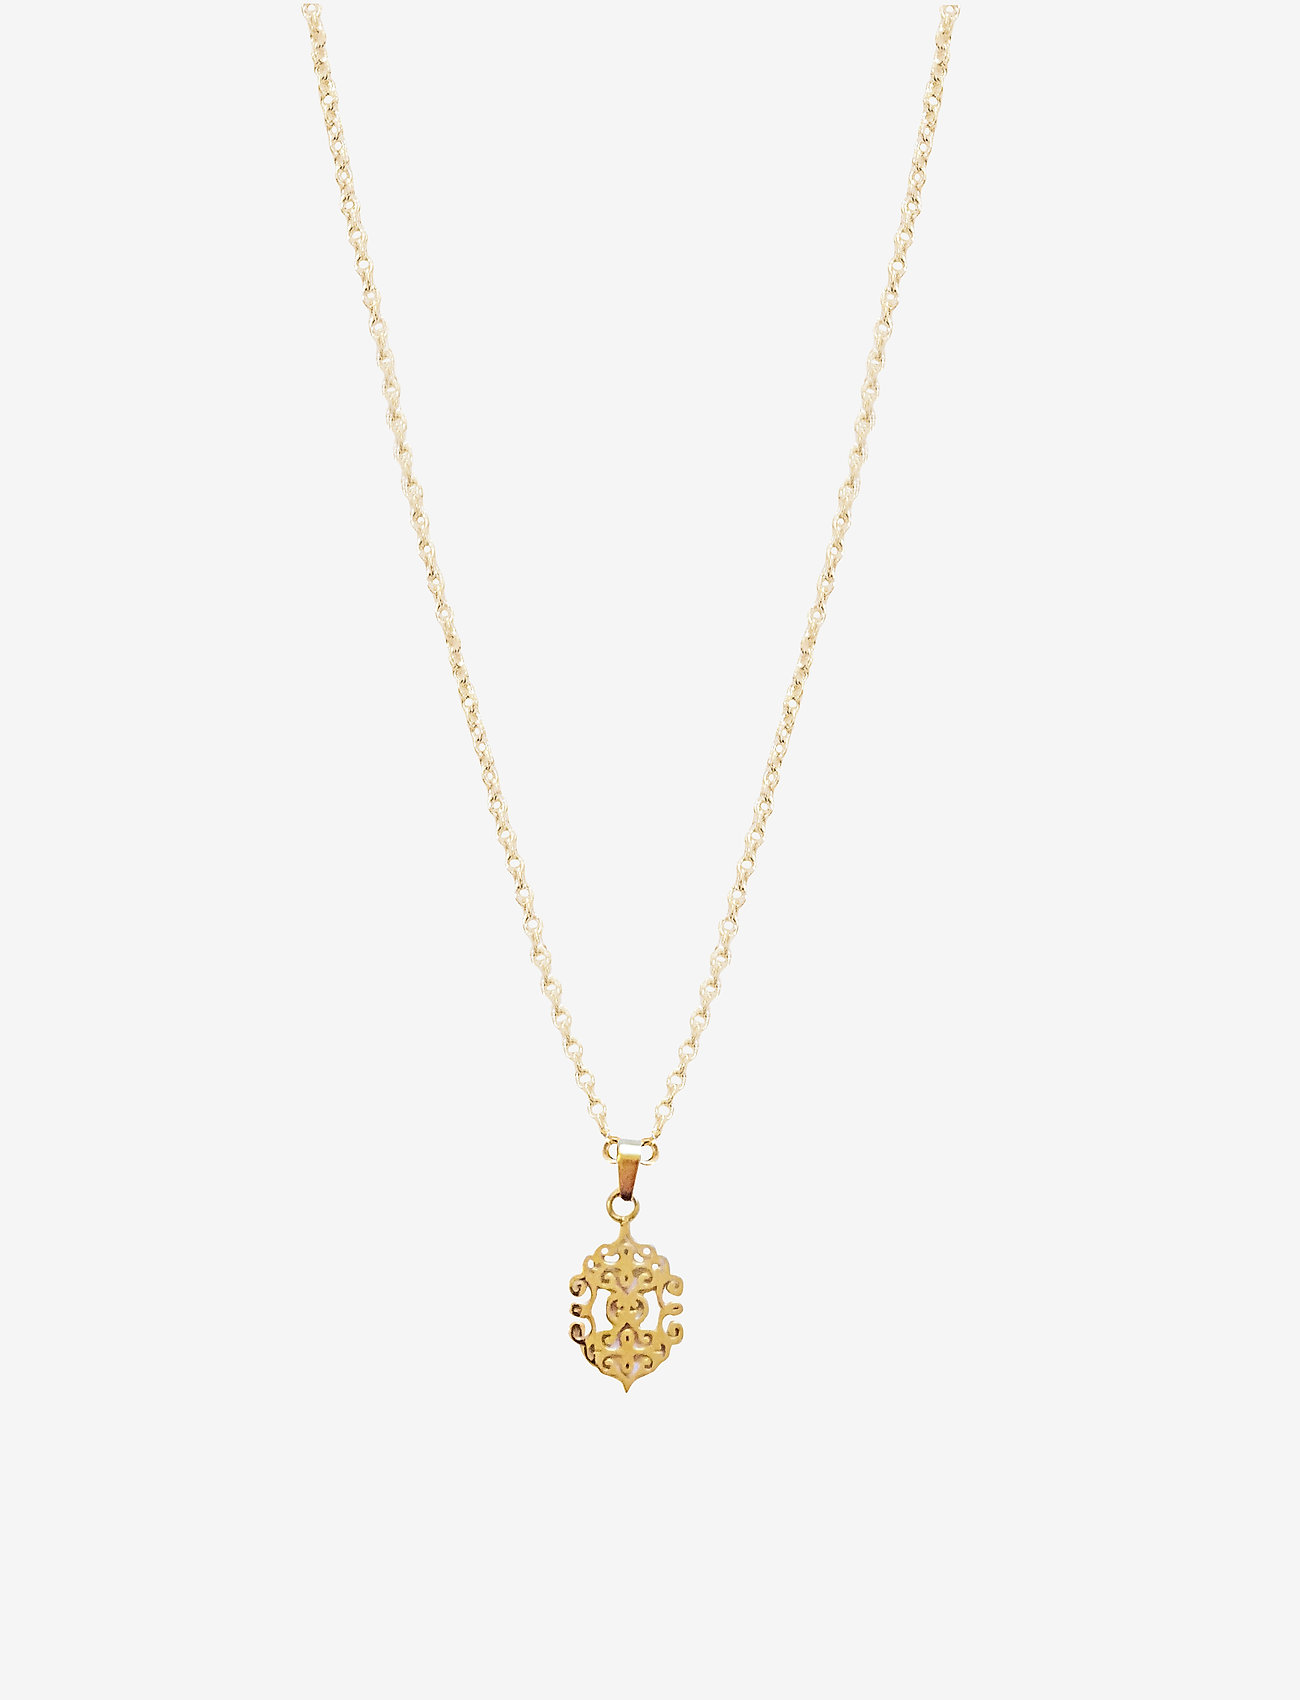 PIPOL'S BAZAAR - Damla Short PIPOL Necklace Gold - dainty necklaces - gold